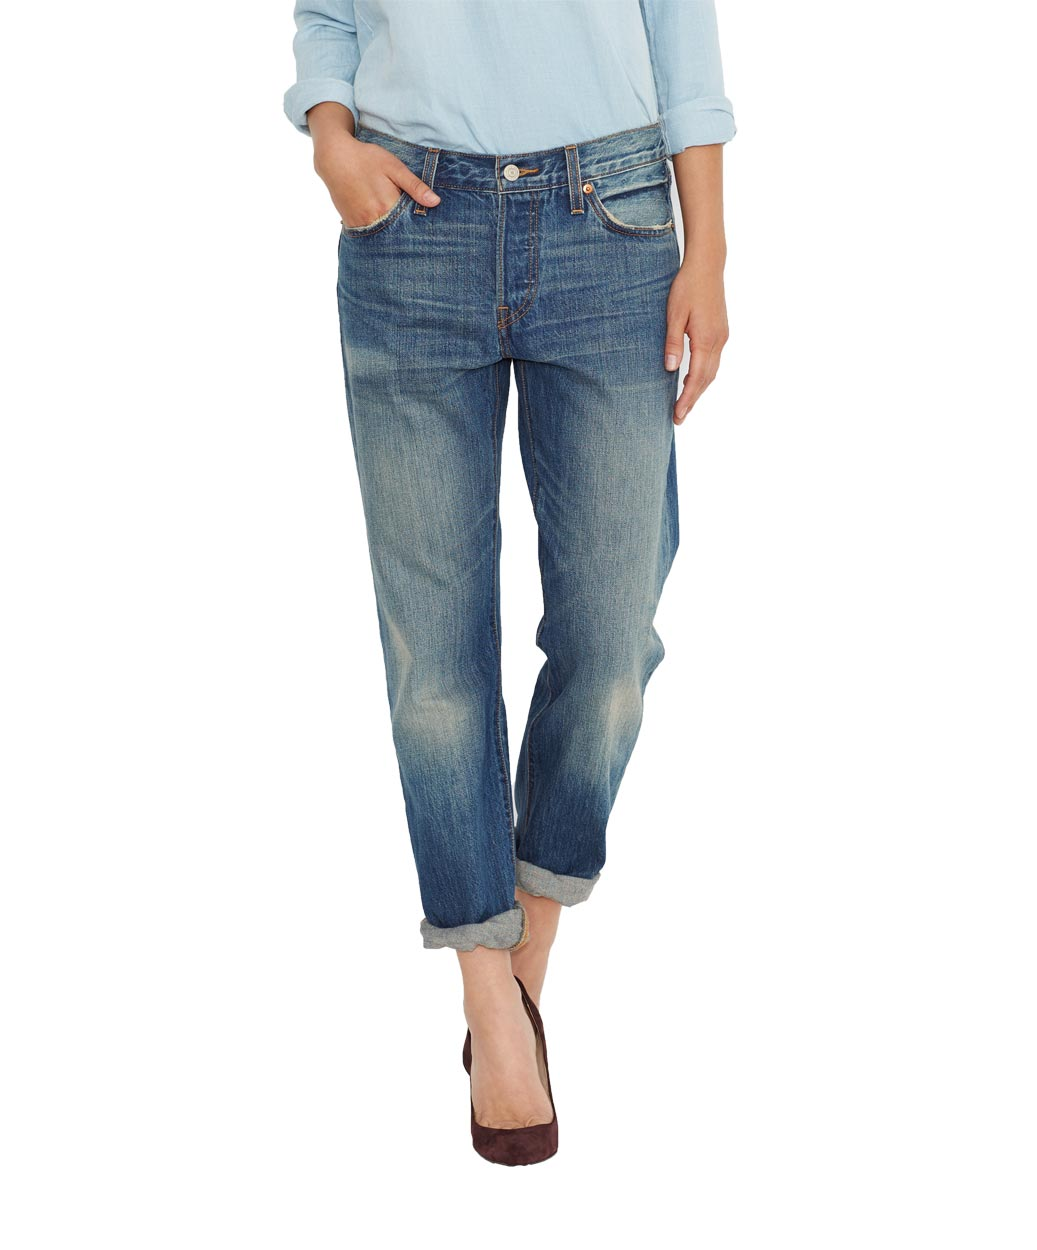 Levis 501 Jeans for Women - Vintage Indigo